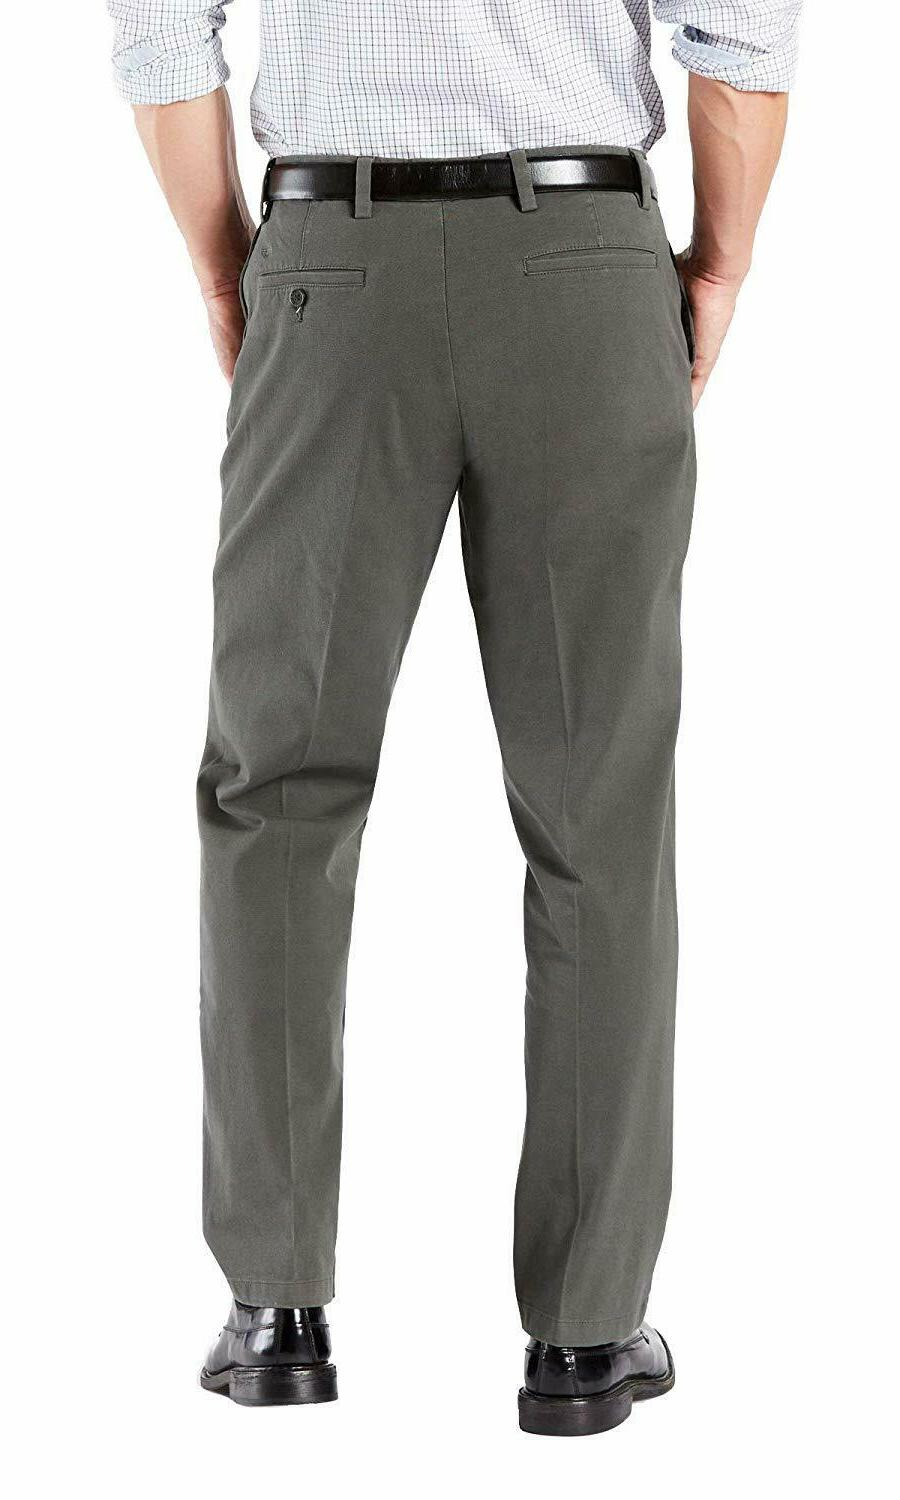 Dockers Men's Fit Workday Smart Flex